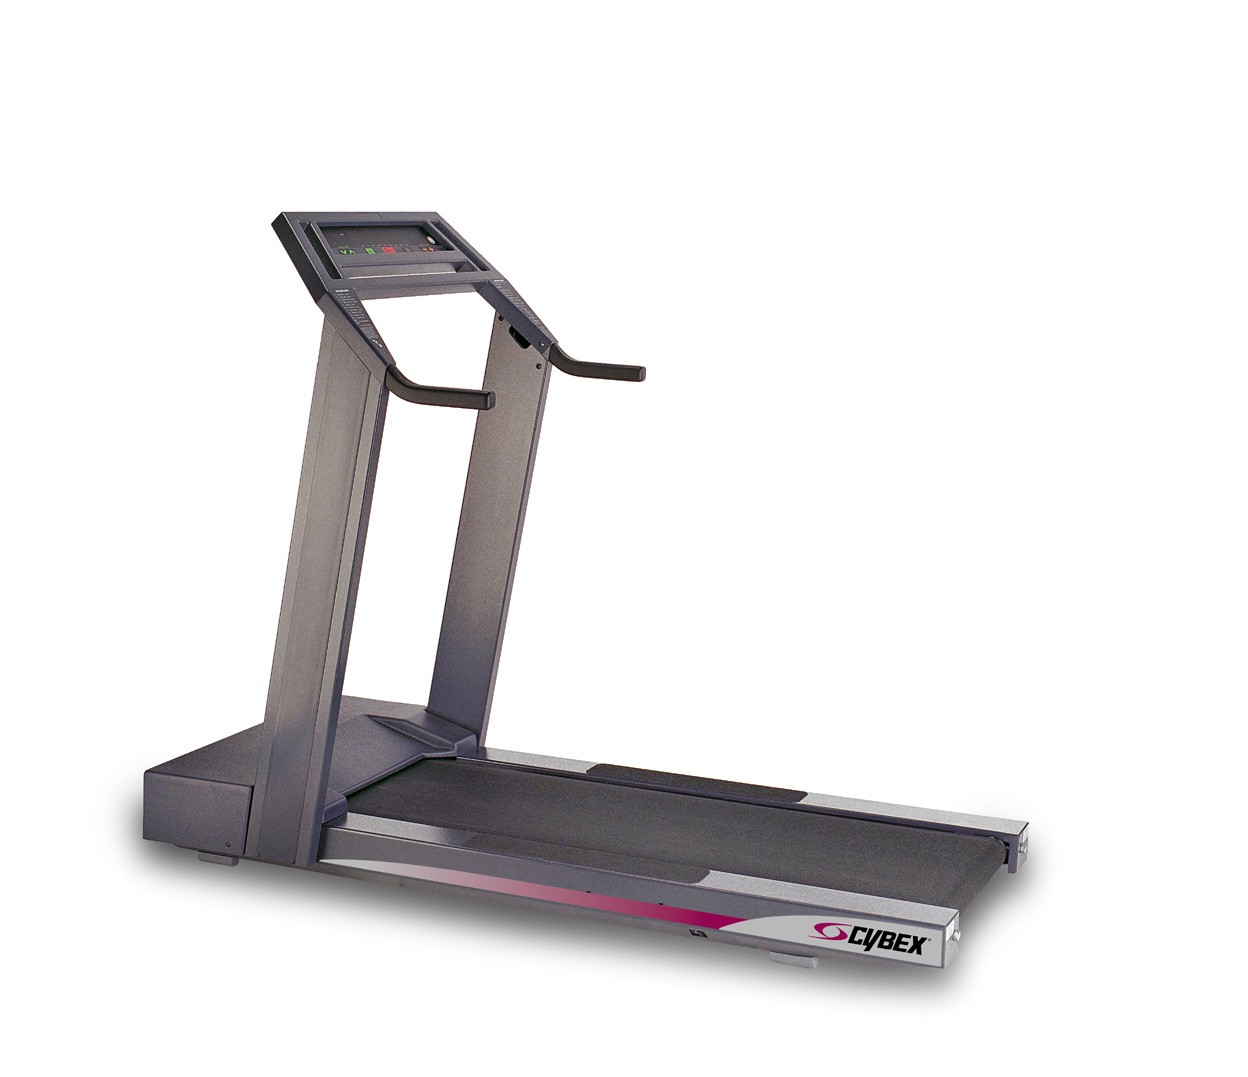 cybex international inc. recalls treadmills previously repaired